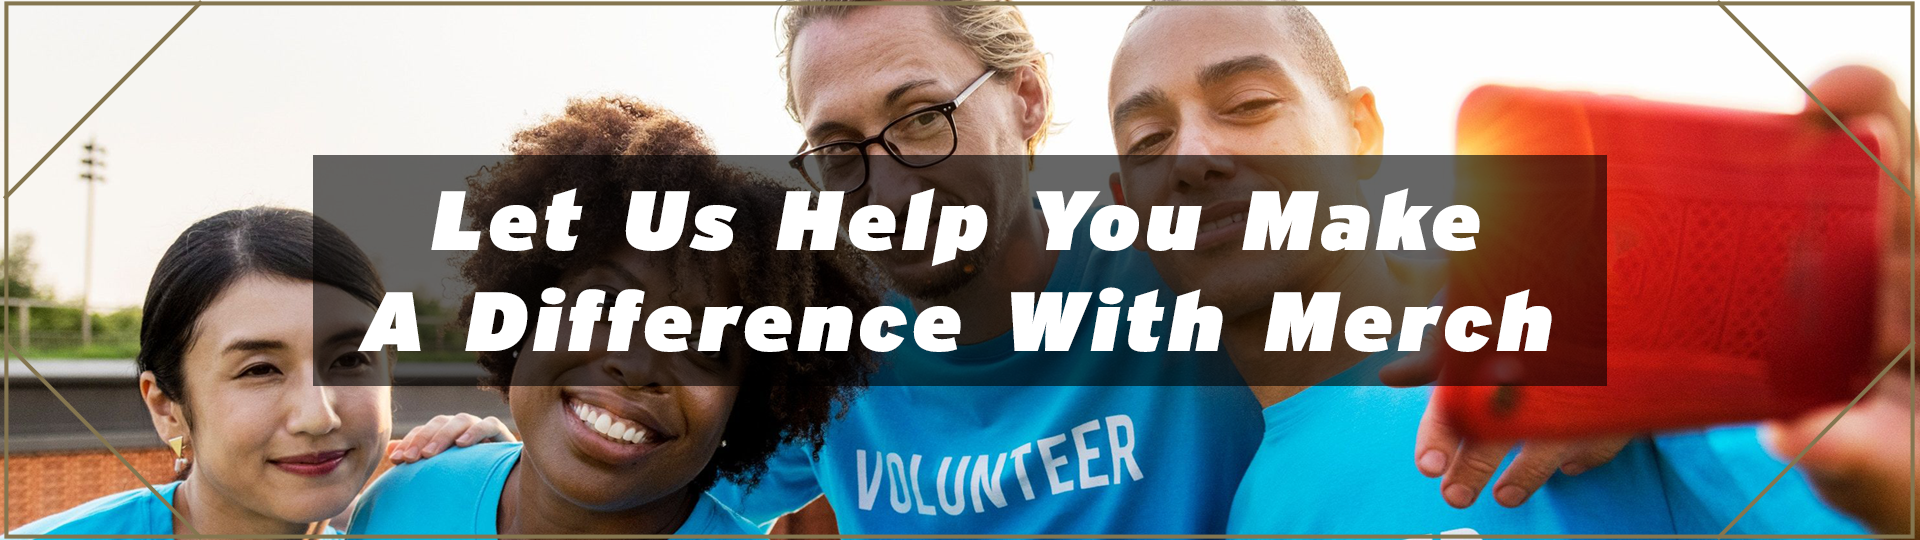 Let Us Help You Make A Difference With Merch